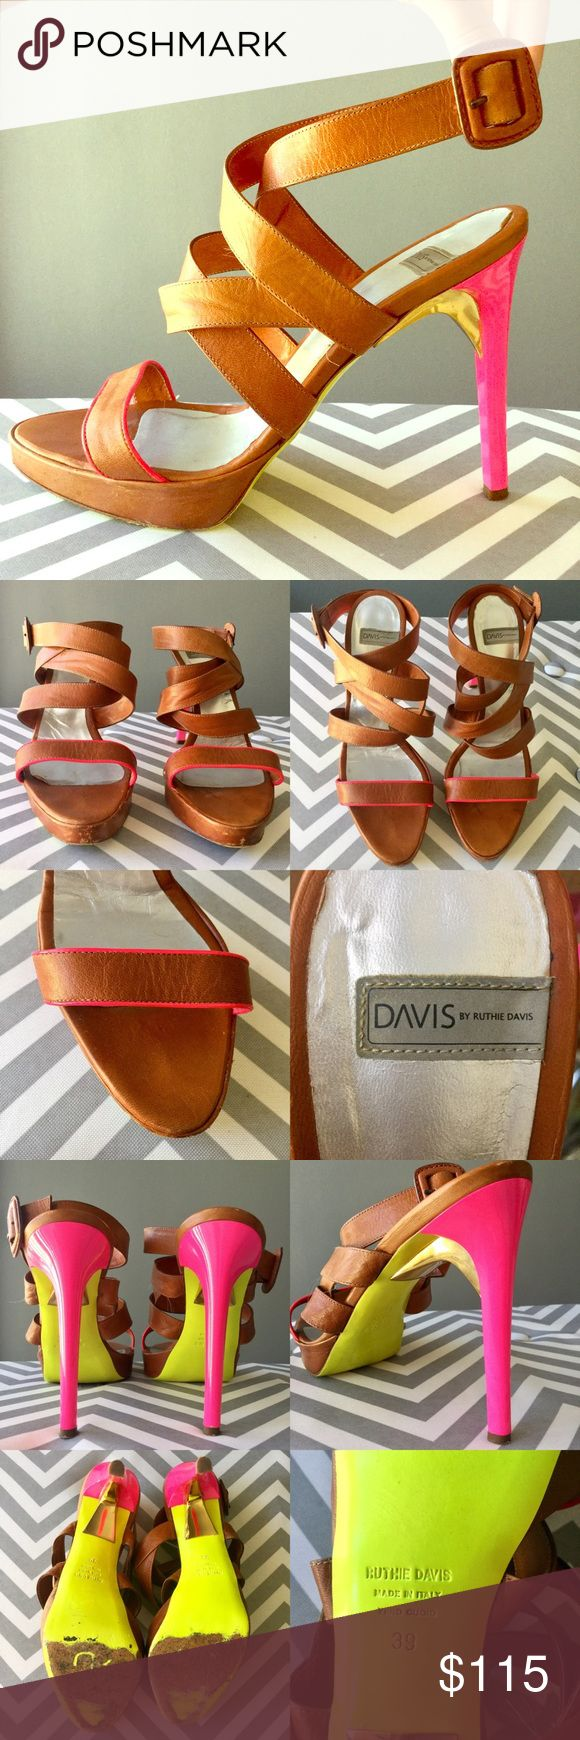 "Ruthie Davis Highline Crisscross strappy sandals 9 100% authentic Ruthie Davis honey brown strappy leather sandals, size 39.  Bubblegum pink heel, yellow soles, and a good accent. There is wear to the soles/insoles, and minor scuffs at the front of the toes; No major flaws.  Overall, very good condition!  Ankle strap with adjustable buckle.  5"" heel, 1"" platform.  No box or dust bag.  This sandal is very similar to the Ruthie Davis Highline Crisscross sandal (shown in model photos), except…"